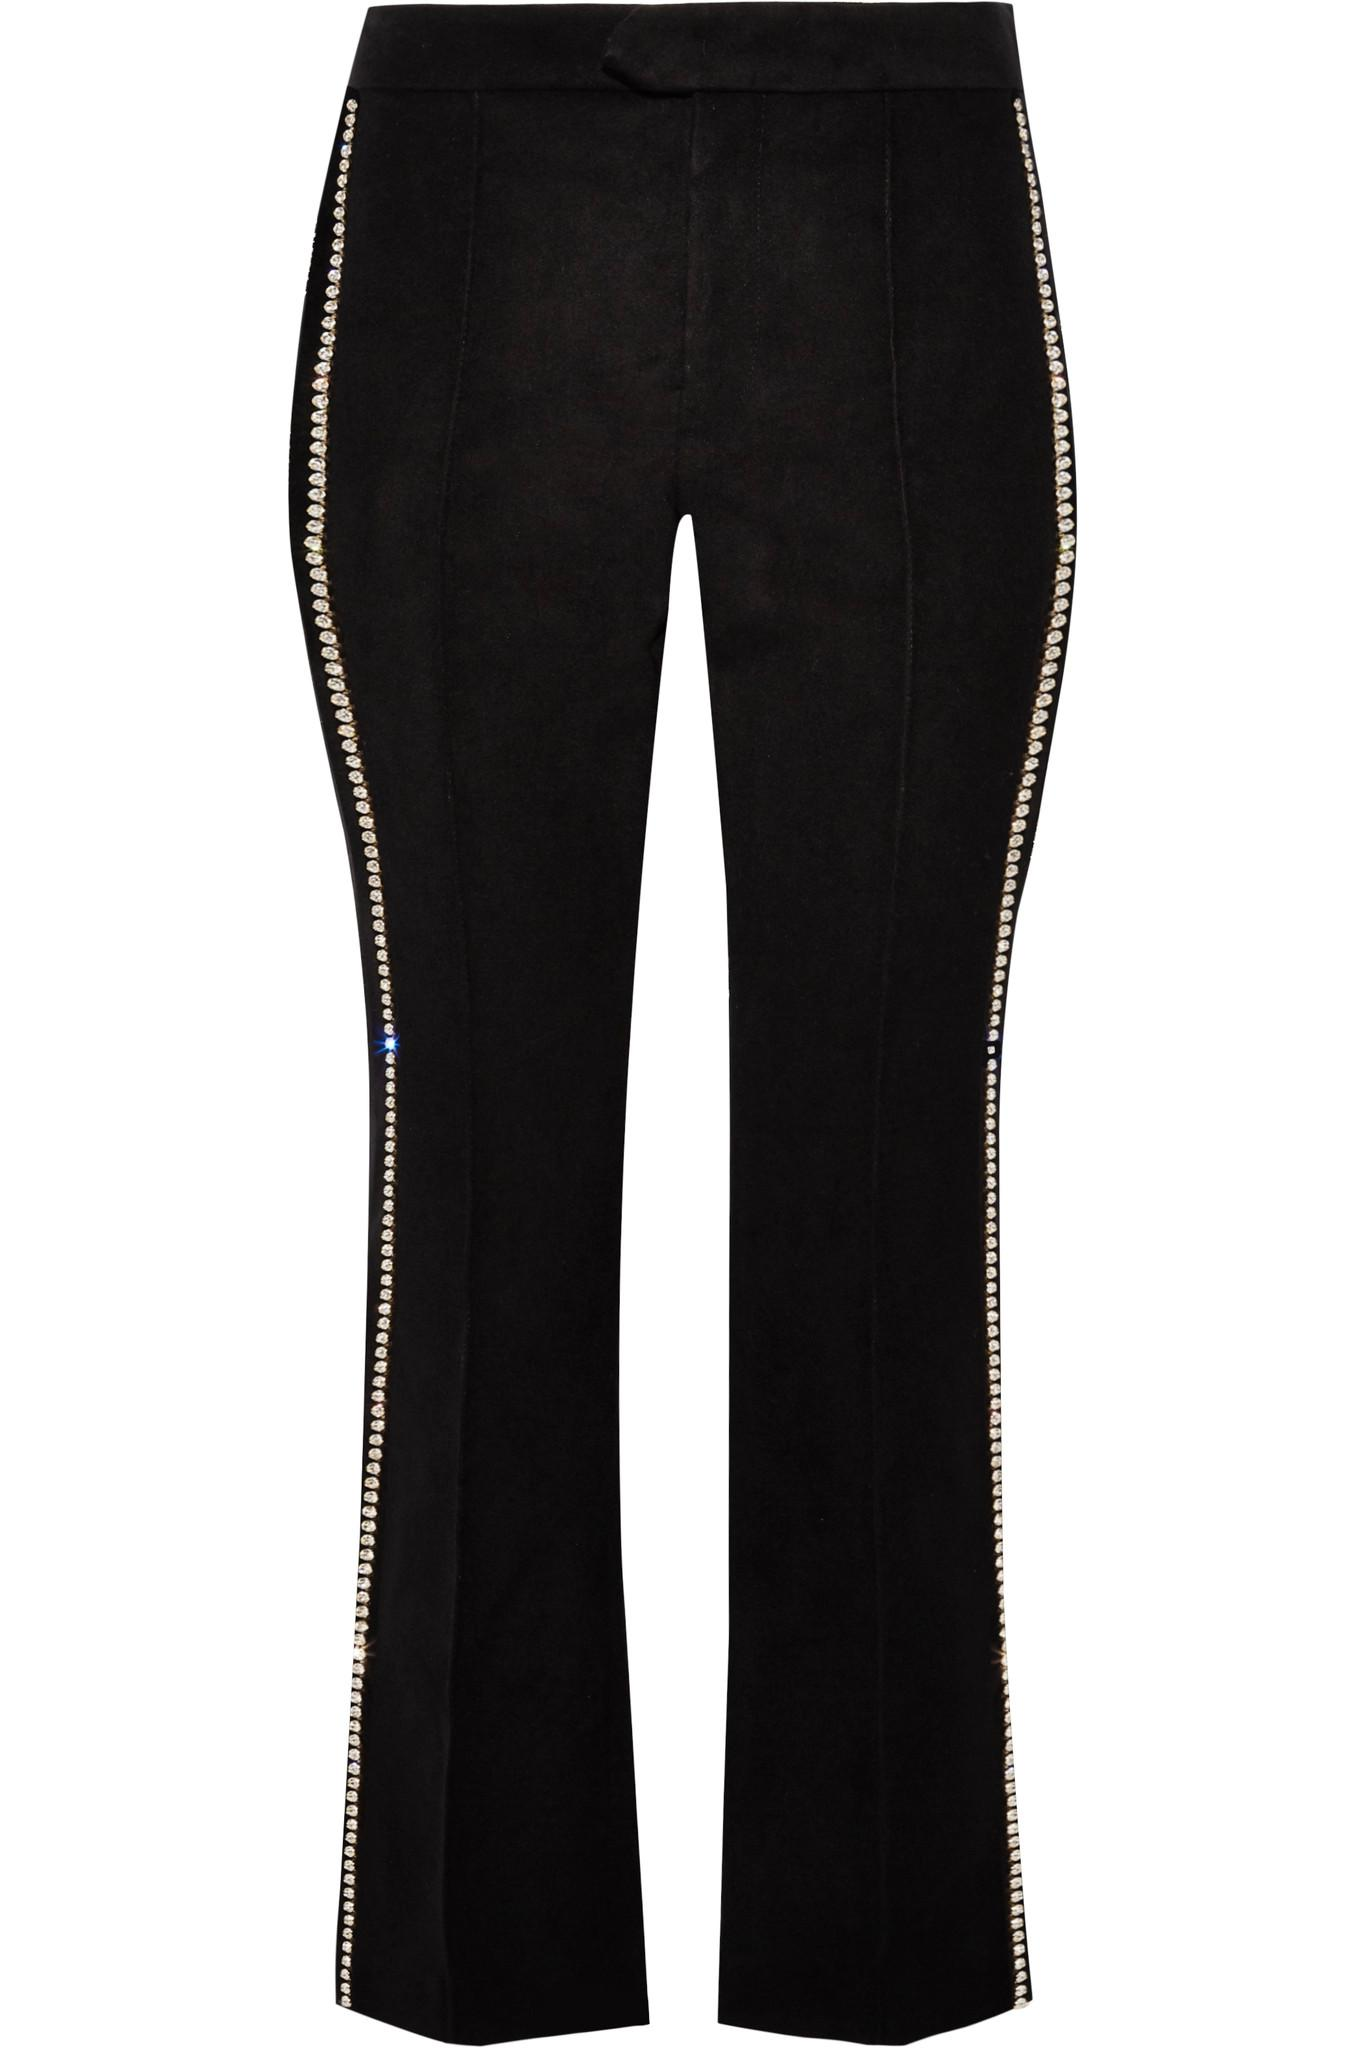 Philea Swarovski Crystal-embellished Felt Straight-leg Pants - Black Isabel Marant tn3T9c